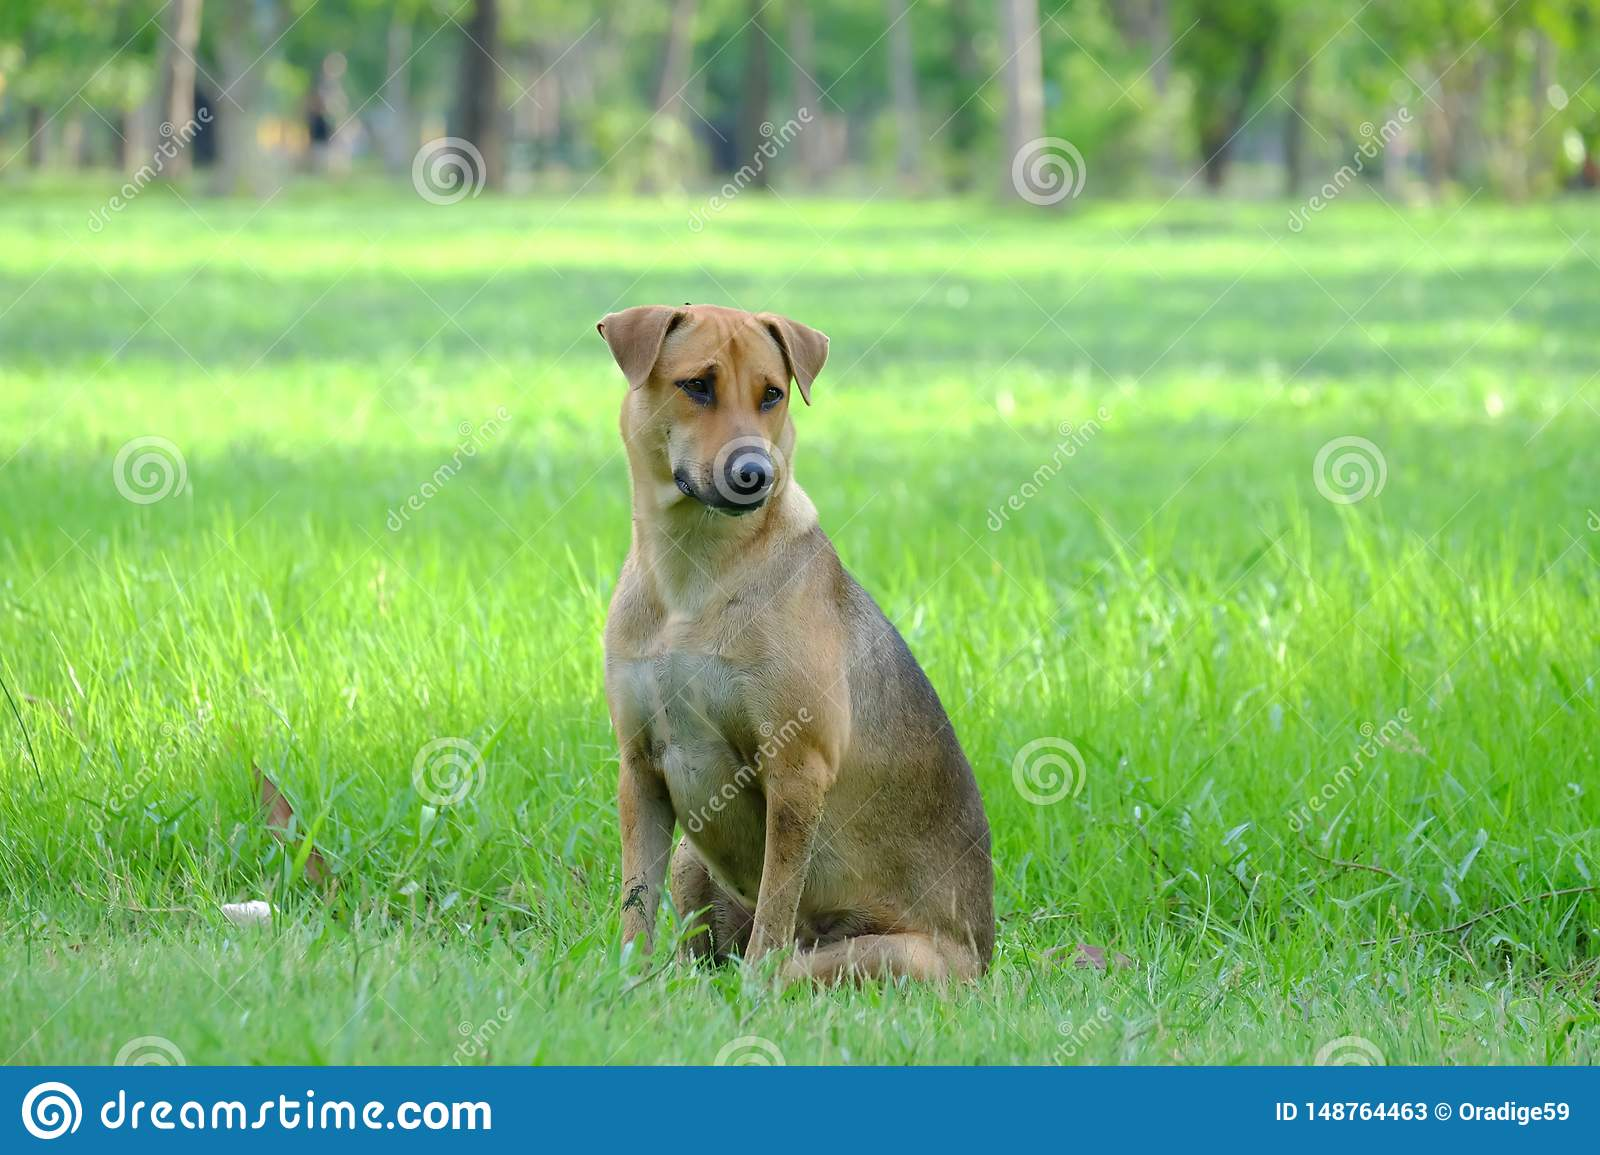 Thai brown dog sitting on a grass field at the park with green nature background and warm light